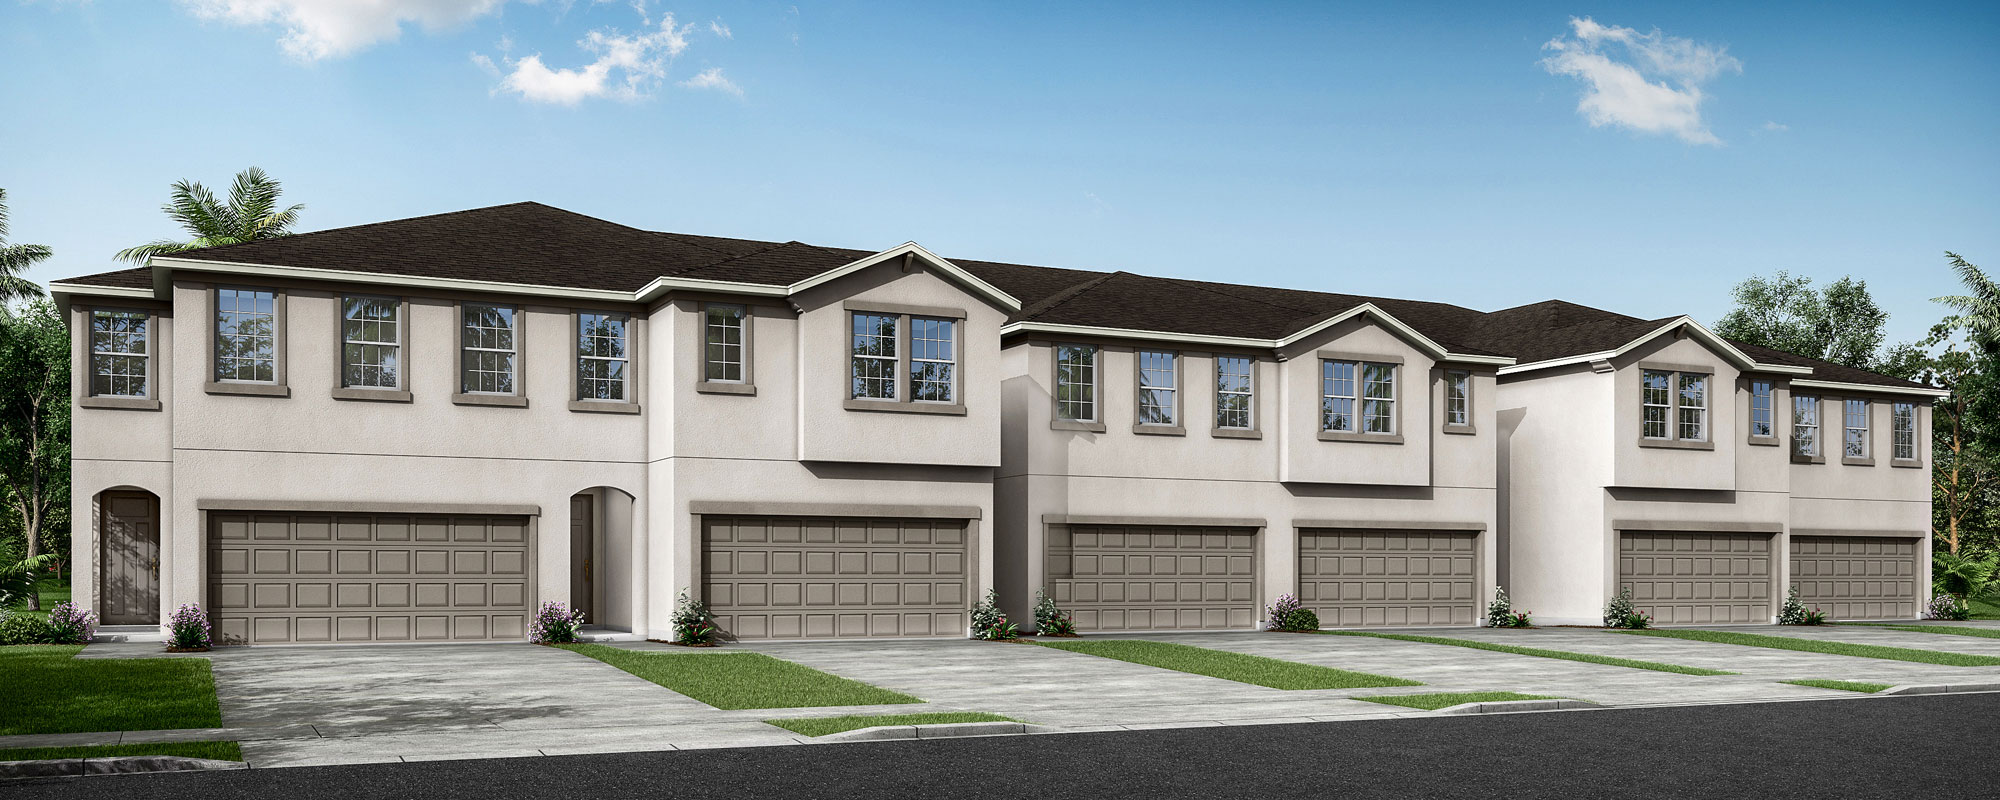 Sebring Plan TownHomes at Parkview at Long Lake Ranch in Lutz Florida by Mattamy Homes